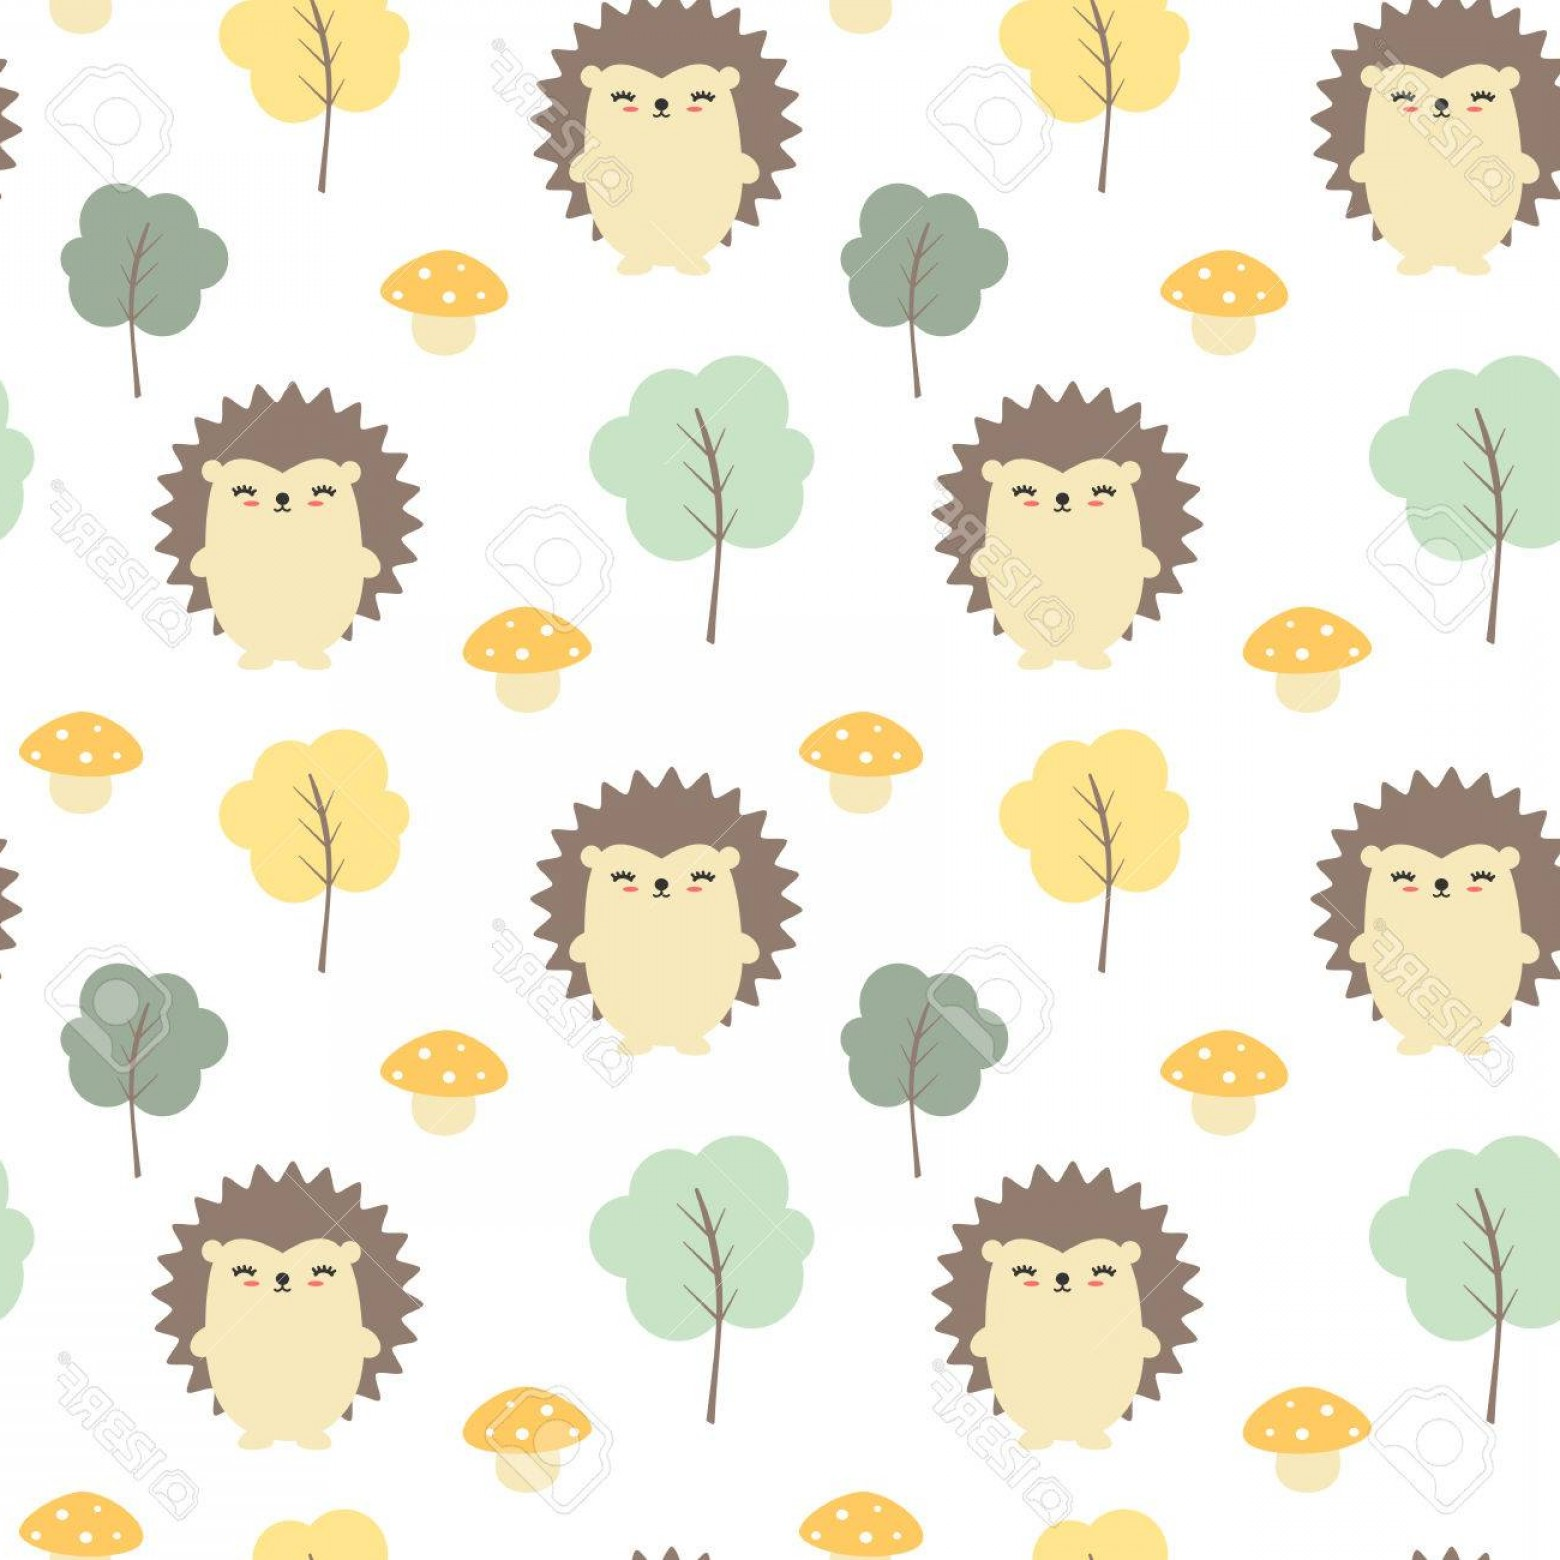 Autumn Seamless Vector: Photostock Vector Cute Fall Autumn Seamless Vector Pattern Background With Hedgehogs Trees And Mushrooms